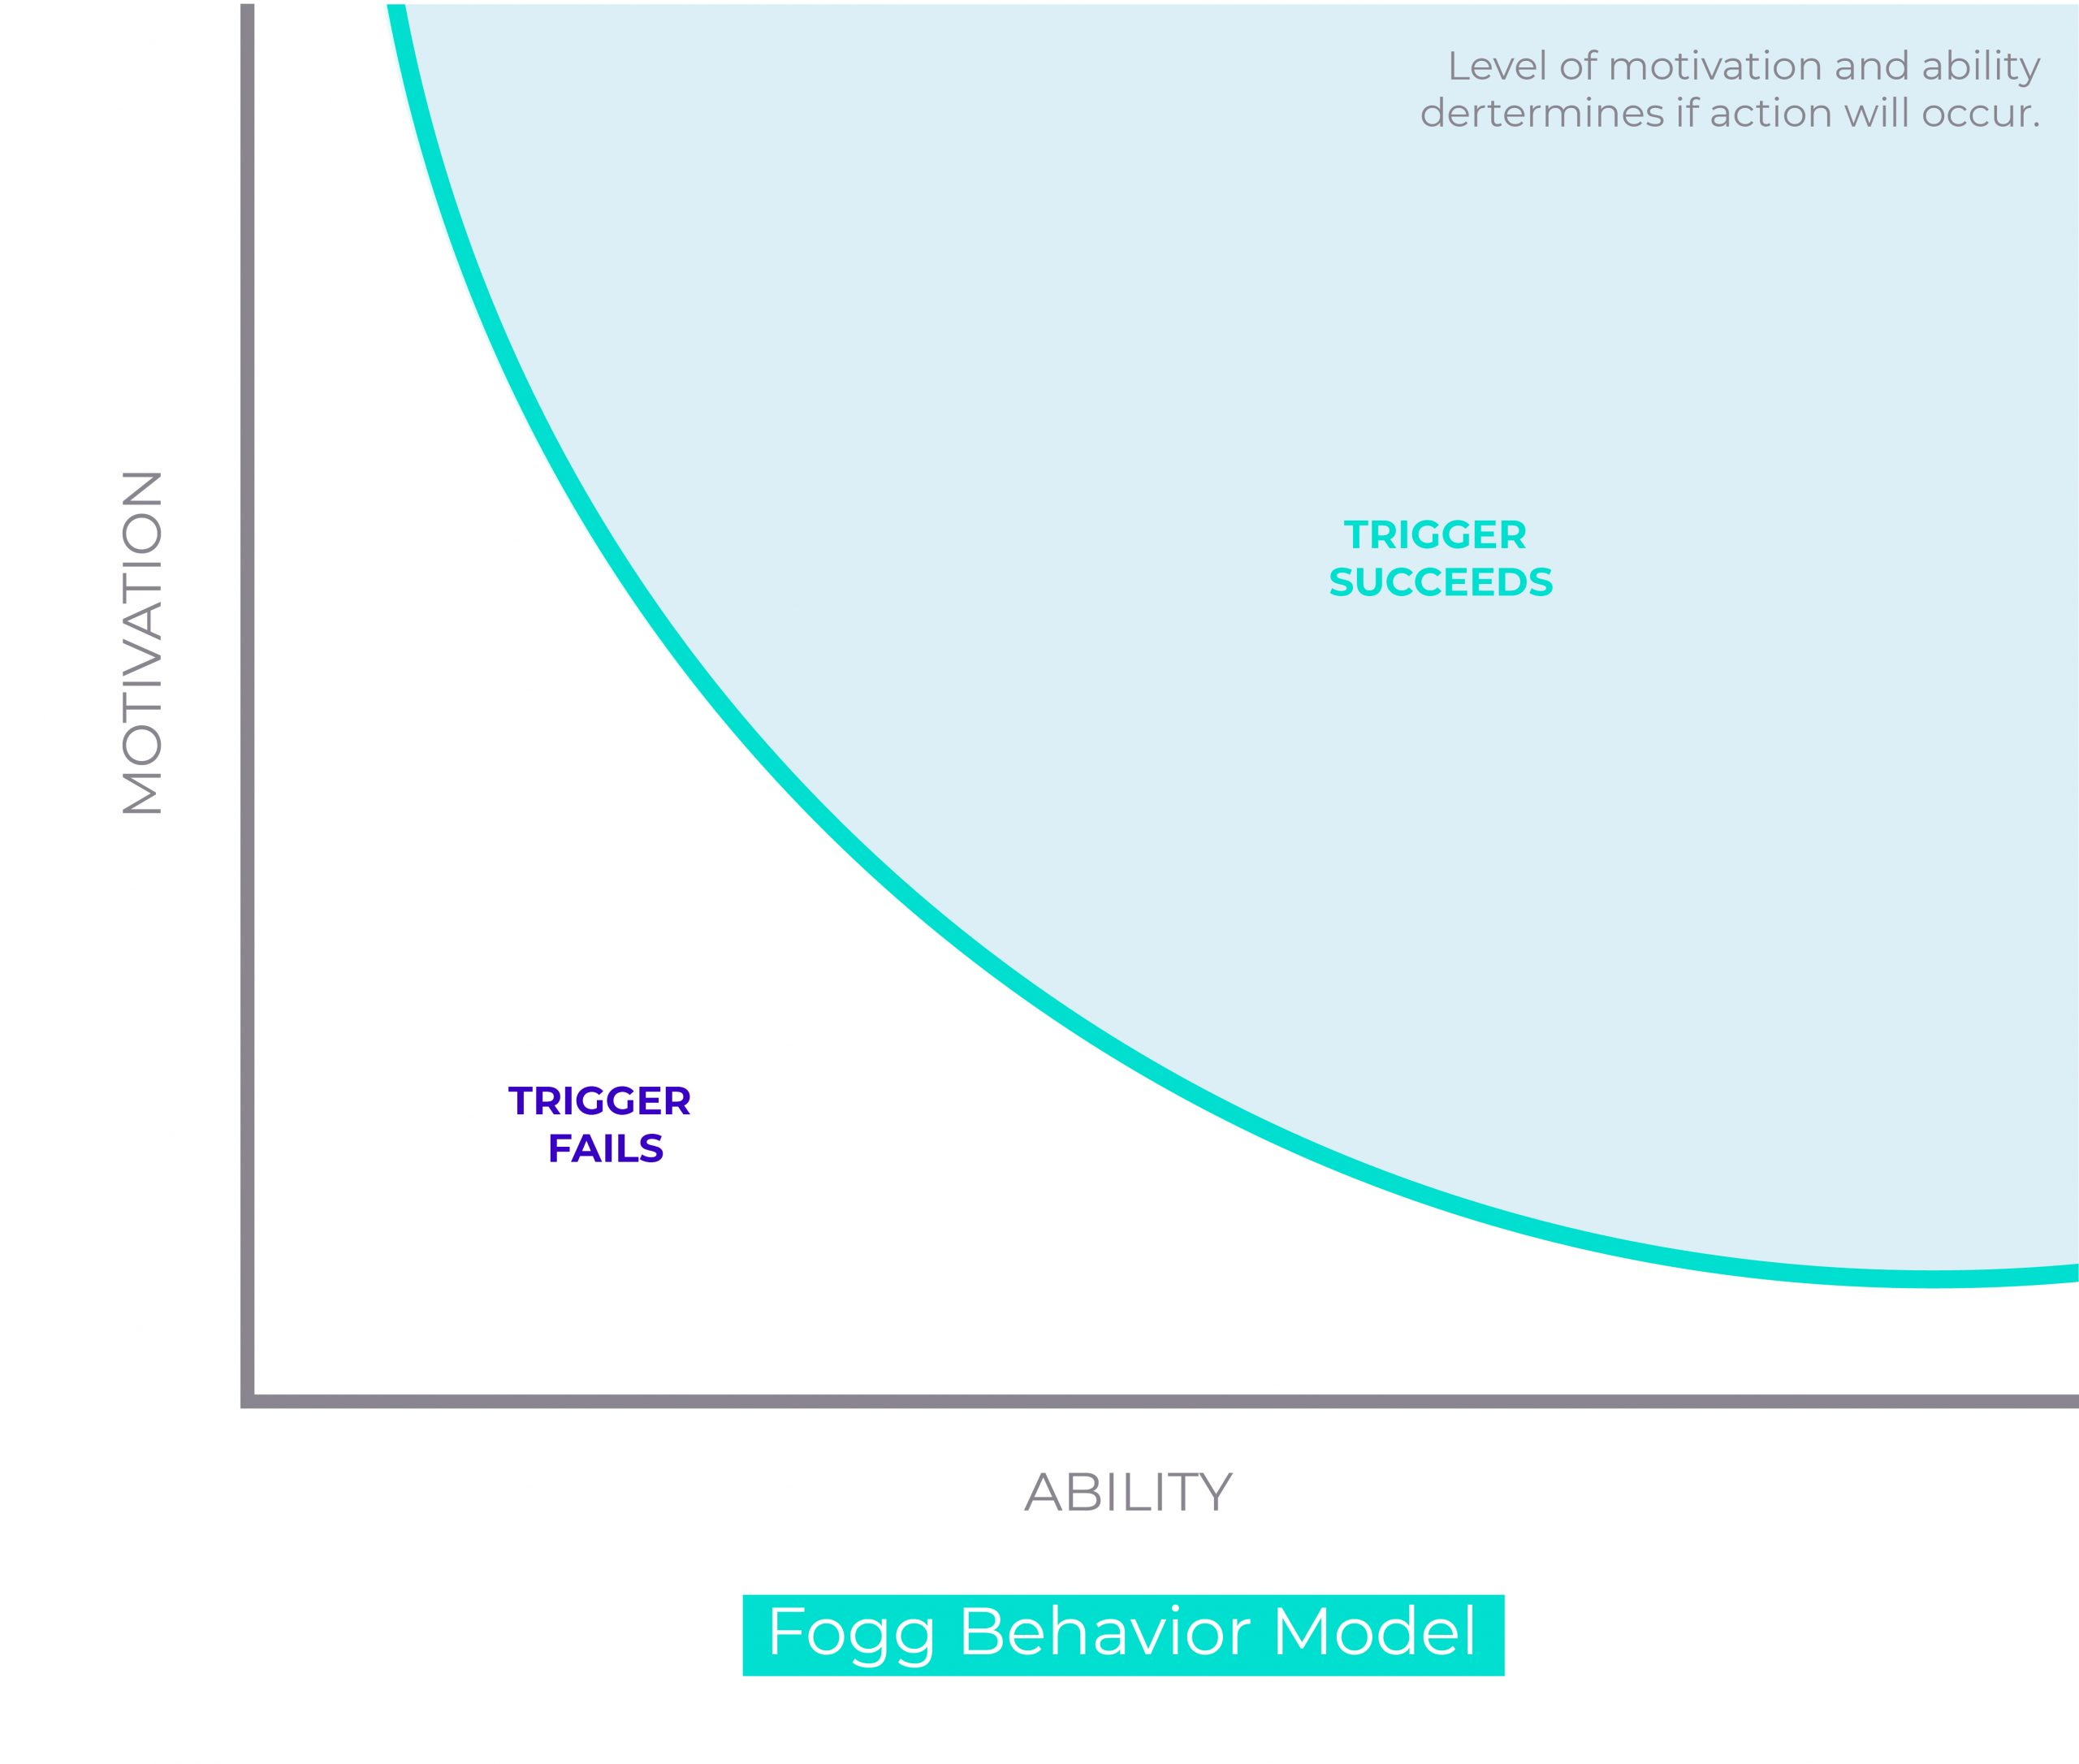 Fogg Behavior Model by Stanford explaining motivational triggers relative to ability